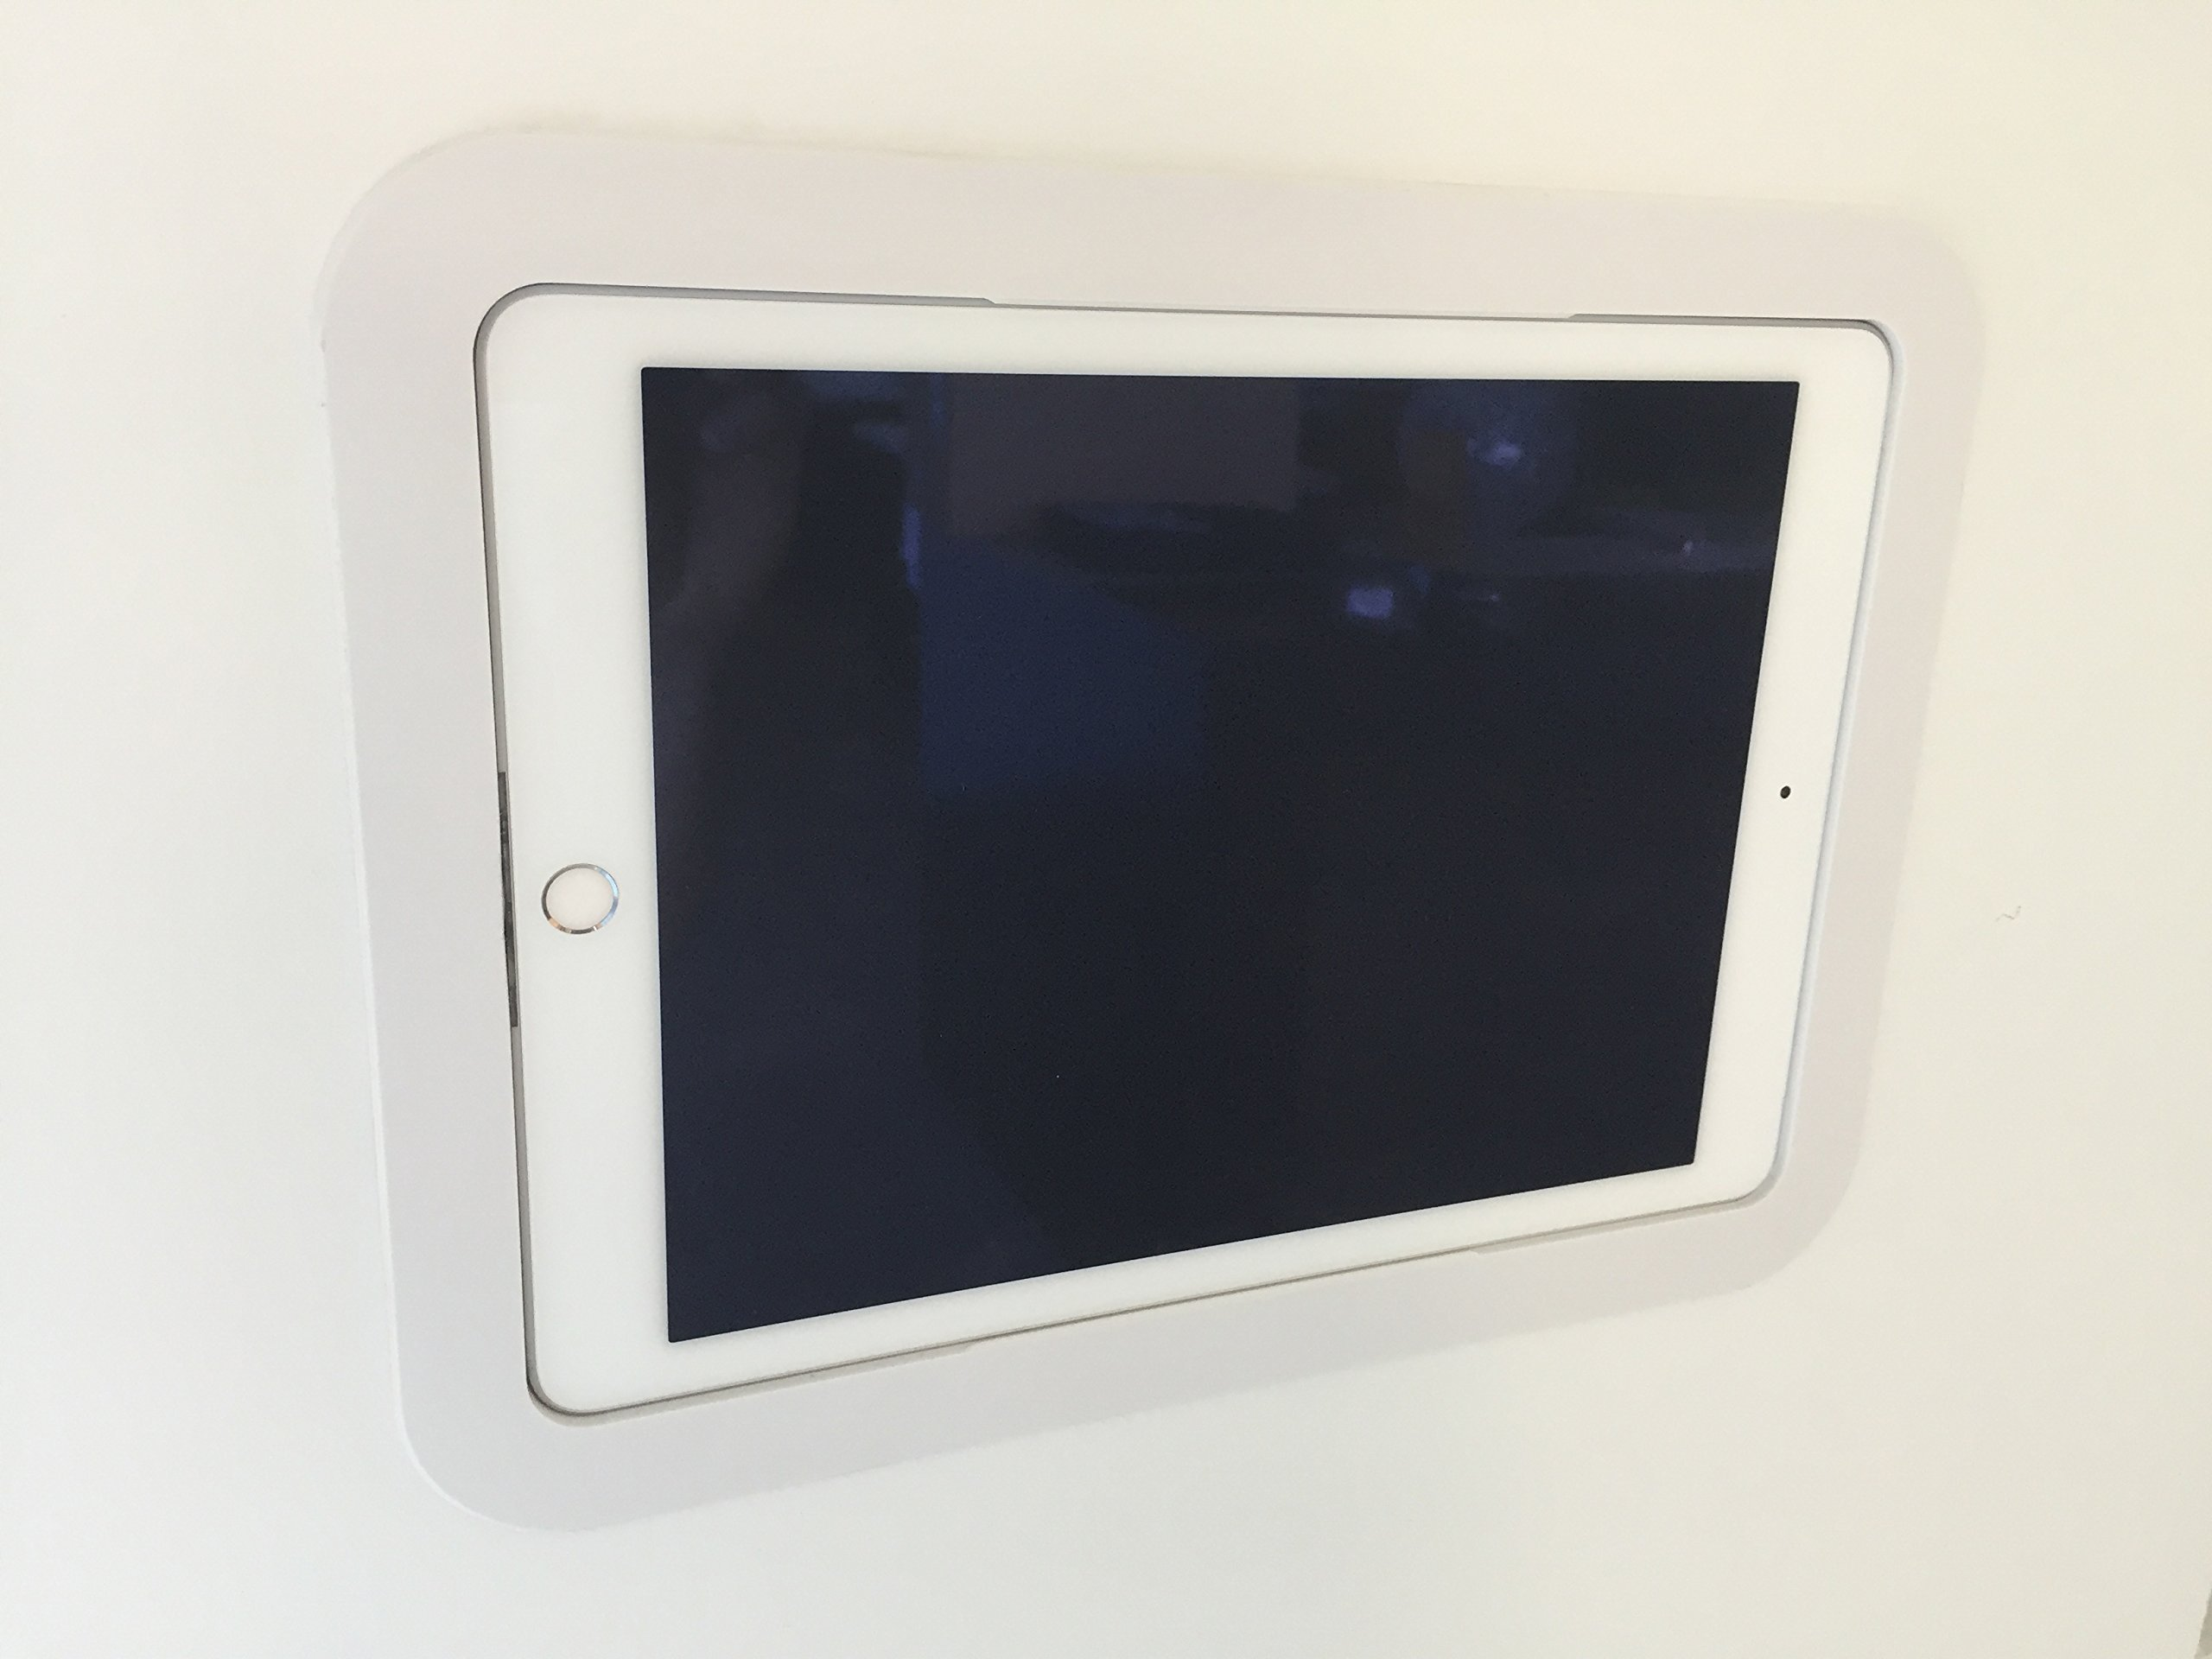 In-Wall iPad Mount for iPad Air1, Air2, PRO9.7, 5th, and 6th Generation